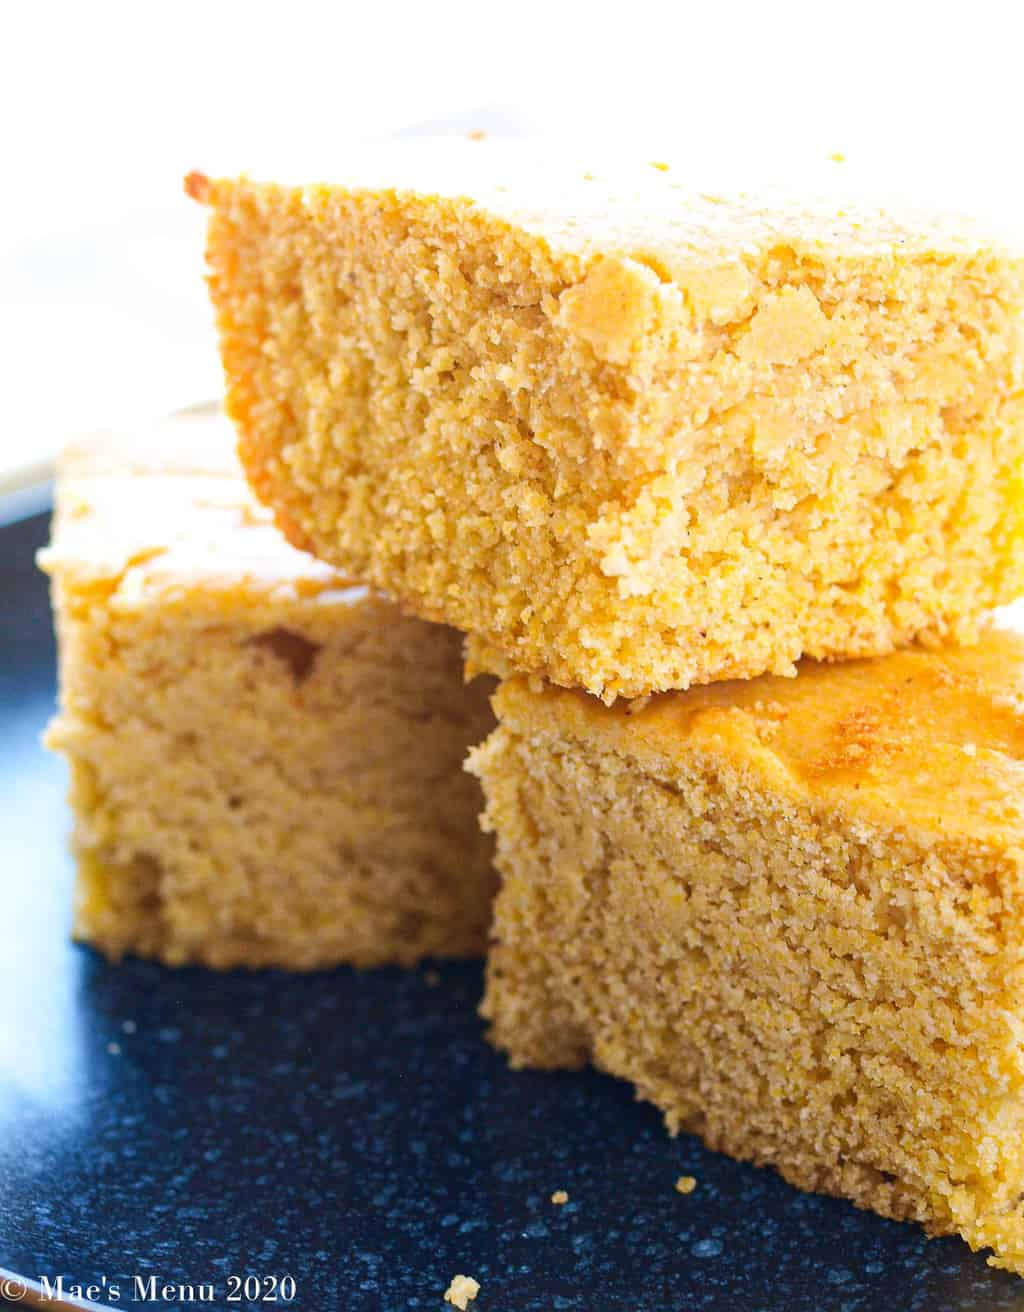 An up-close of 3 pieces of gluten-free cornbread